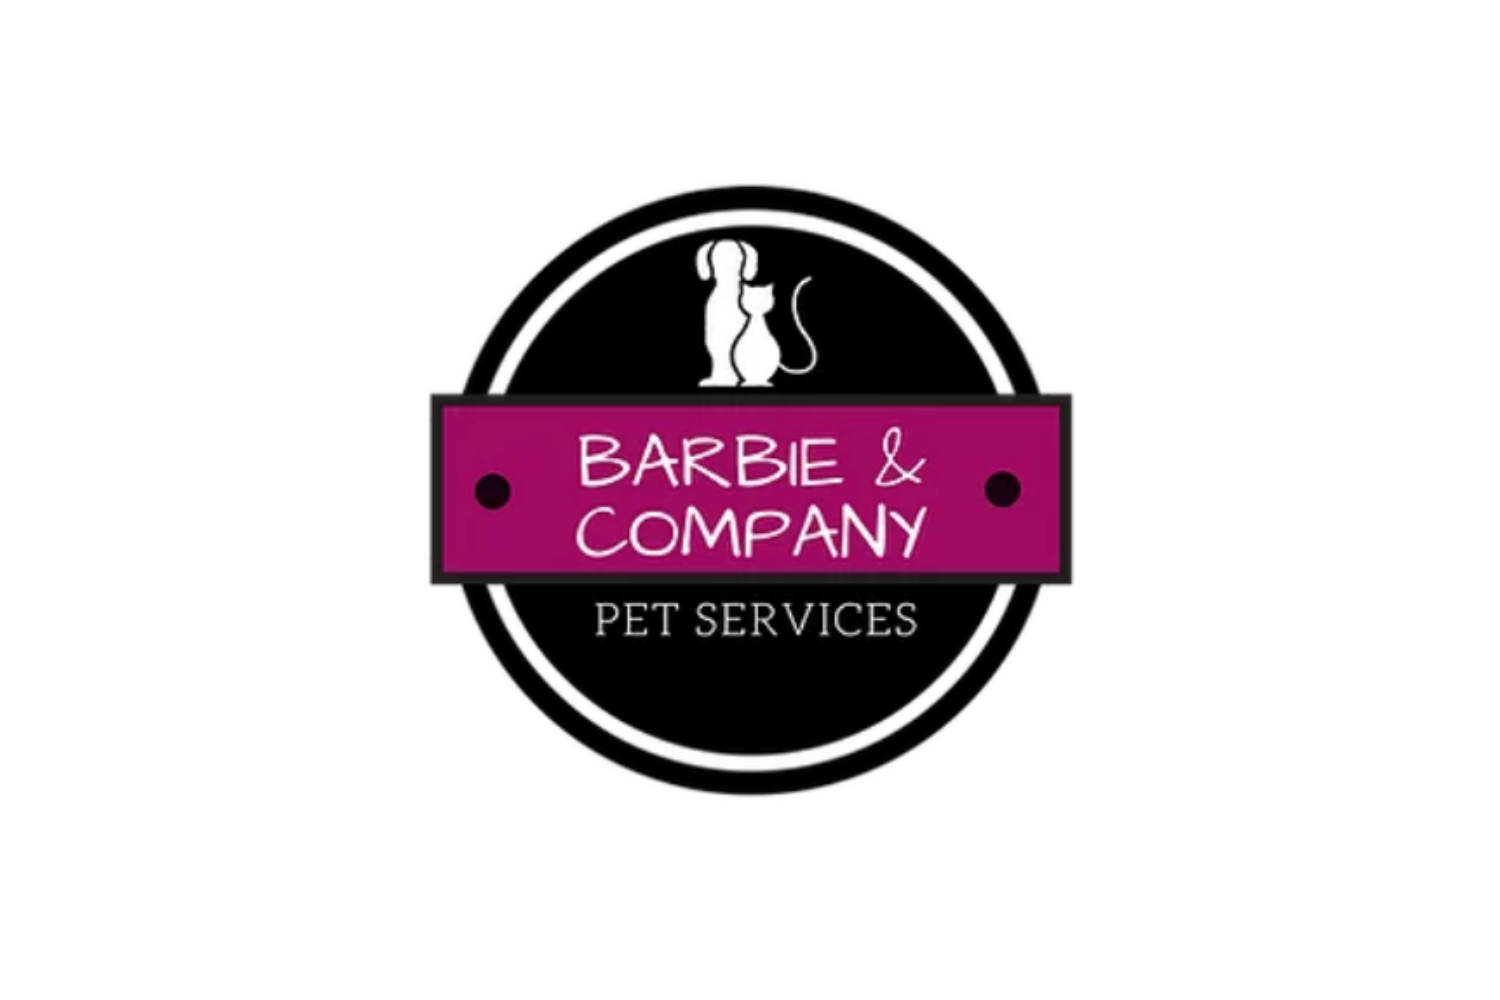 Barbie-and-comapny-logo.png